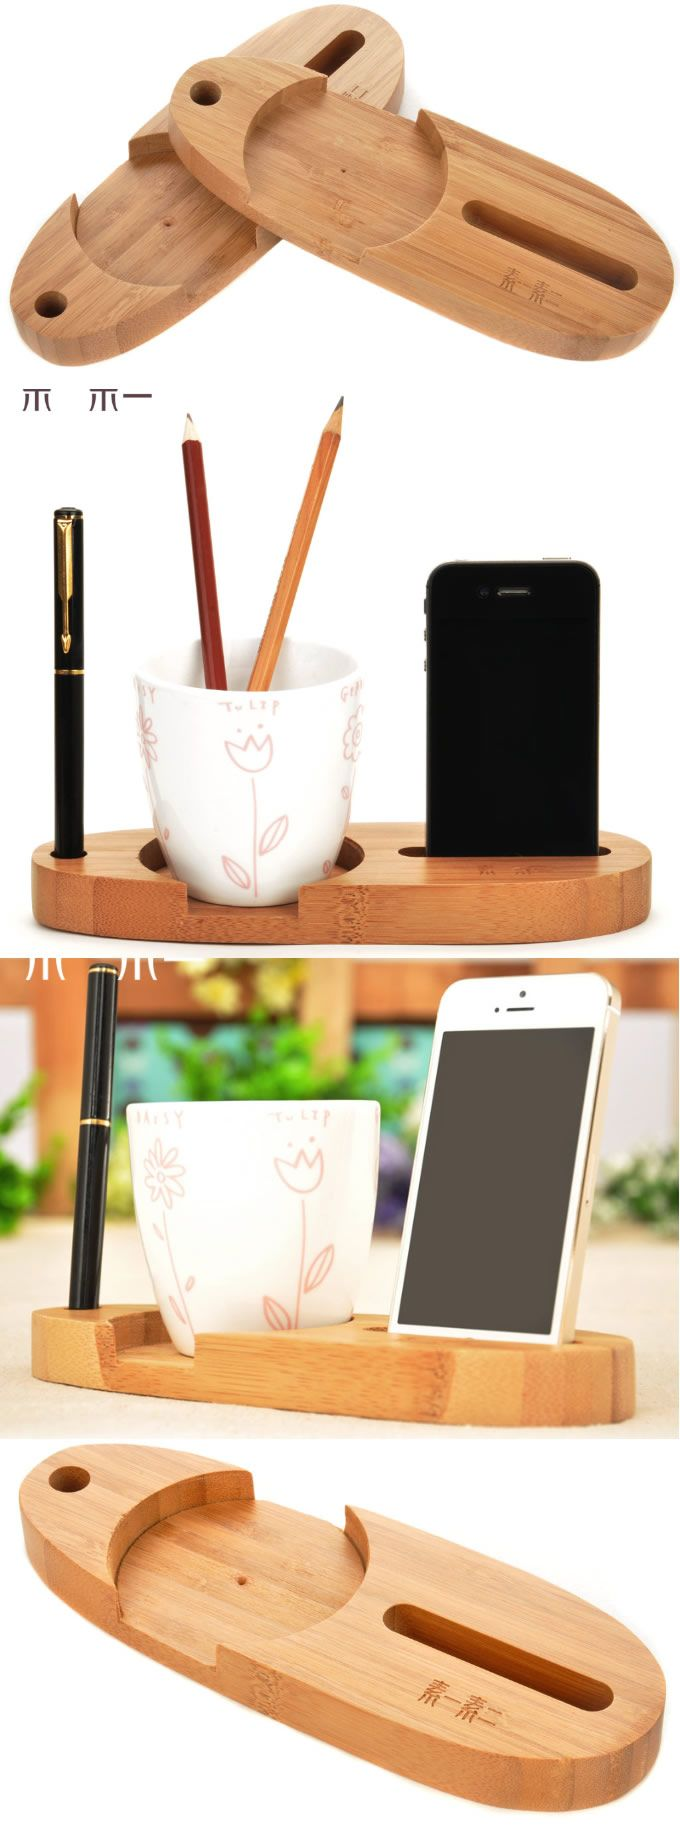 Multipurpose Wooden Office Desk Organizer Cup Slots iPhone Smart Phone Stand Holder Pen Pencils Holder Business Card Stand Holder